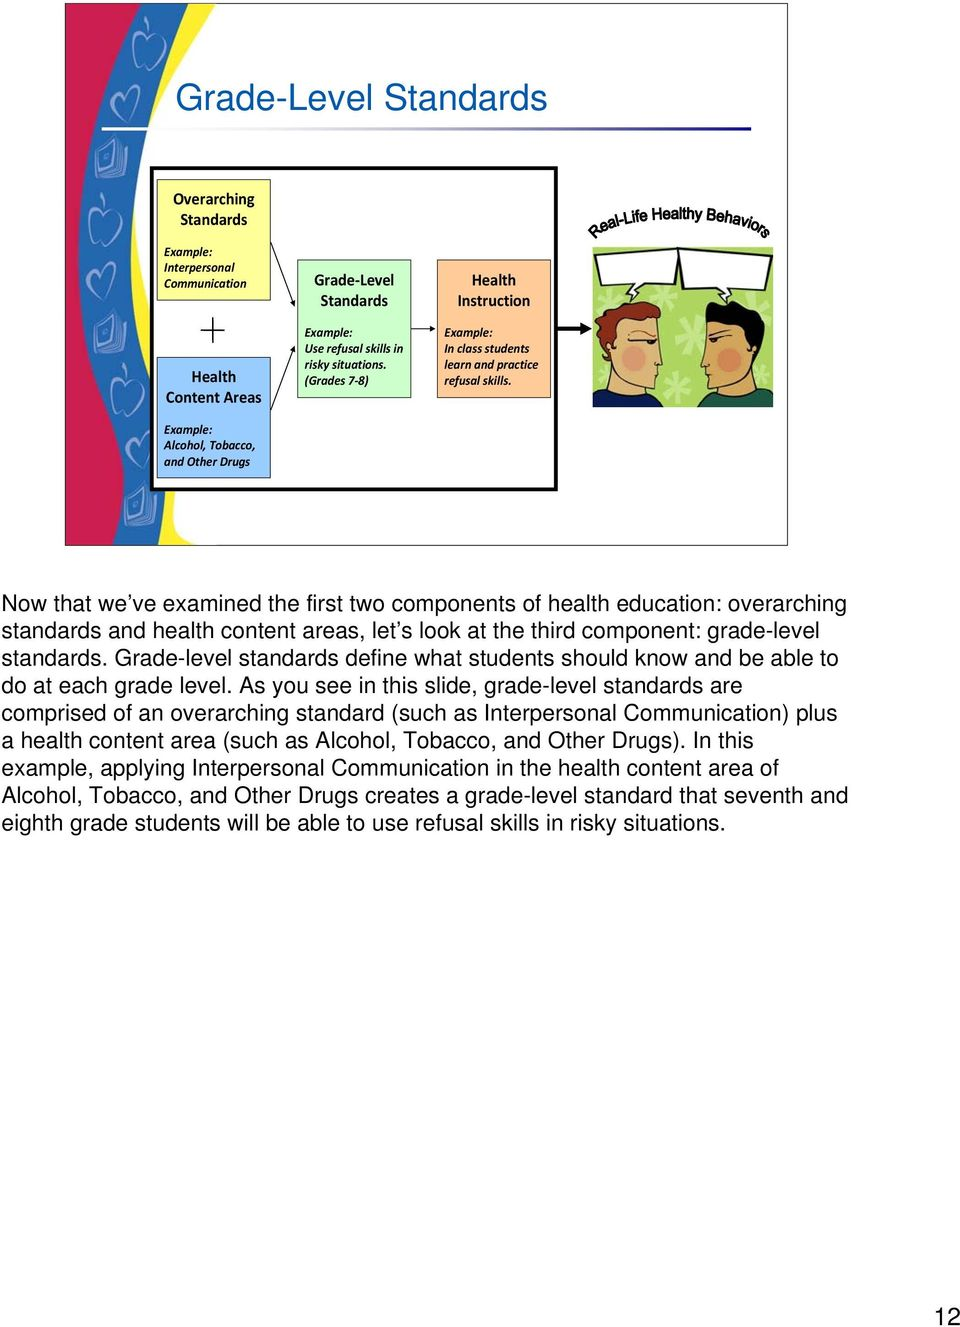 Example: Alcohol, Tobacco, and Other Drugs Now that we ve examined the first two components of health education: overarching standards and health content areas, let s look at the third component: